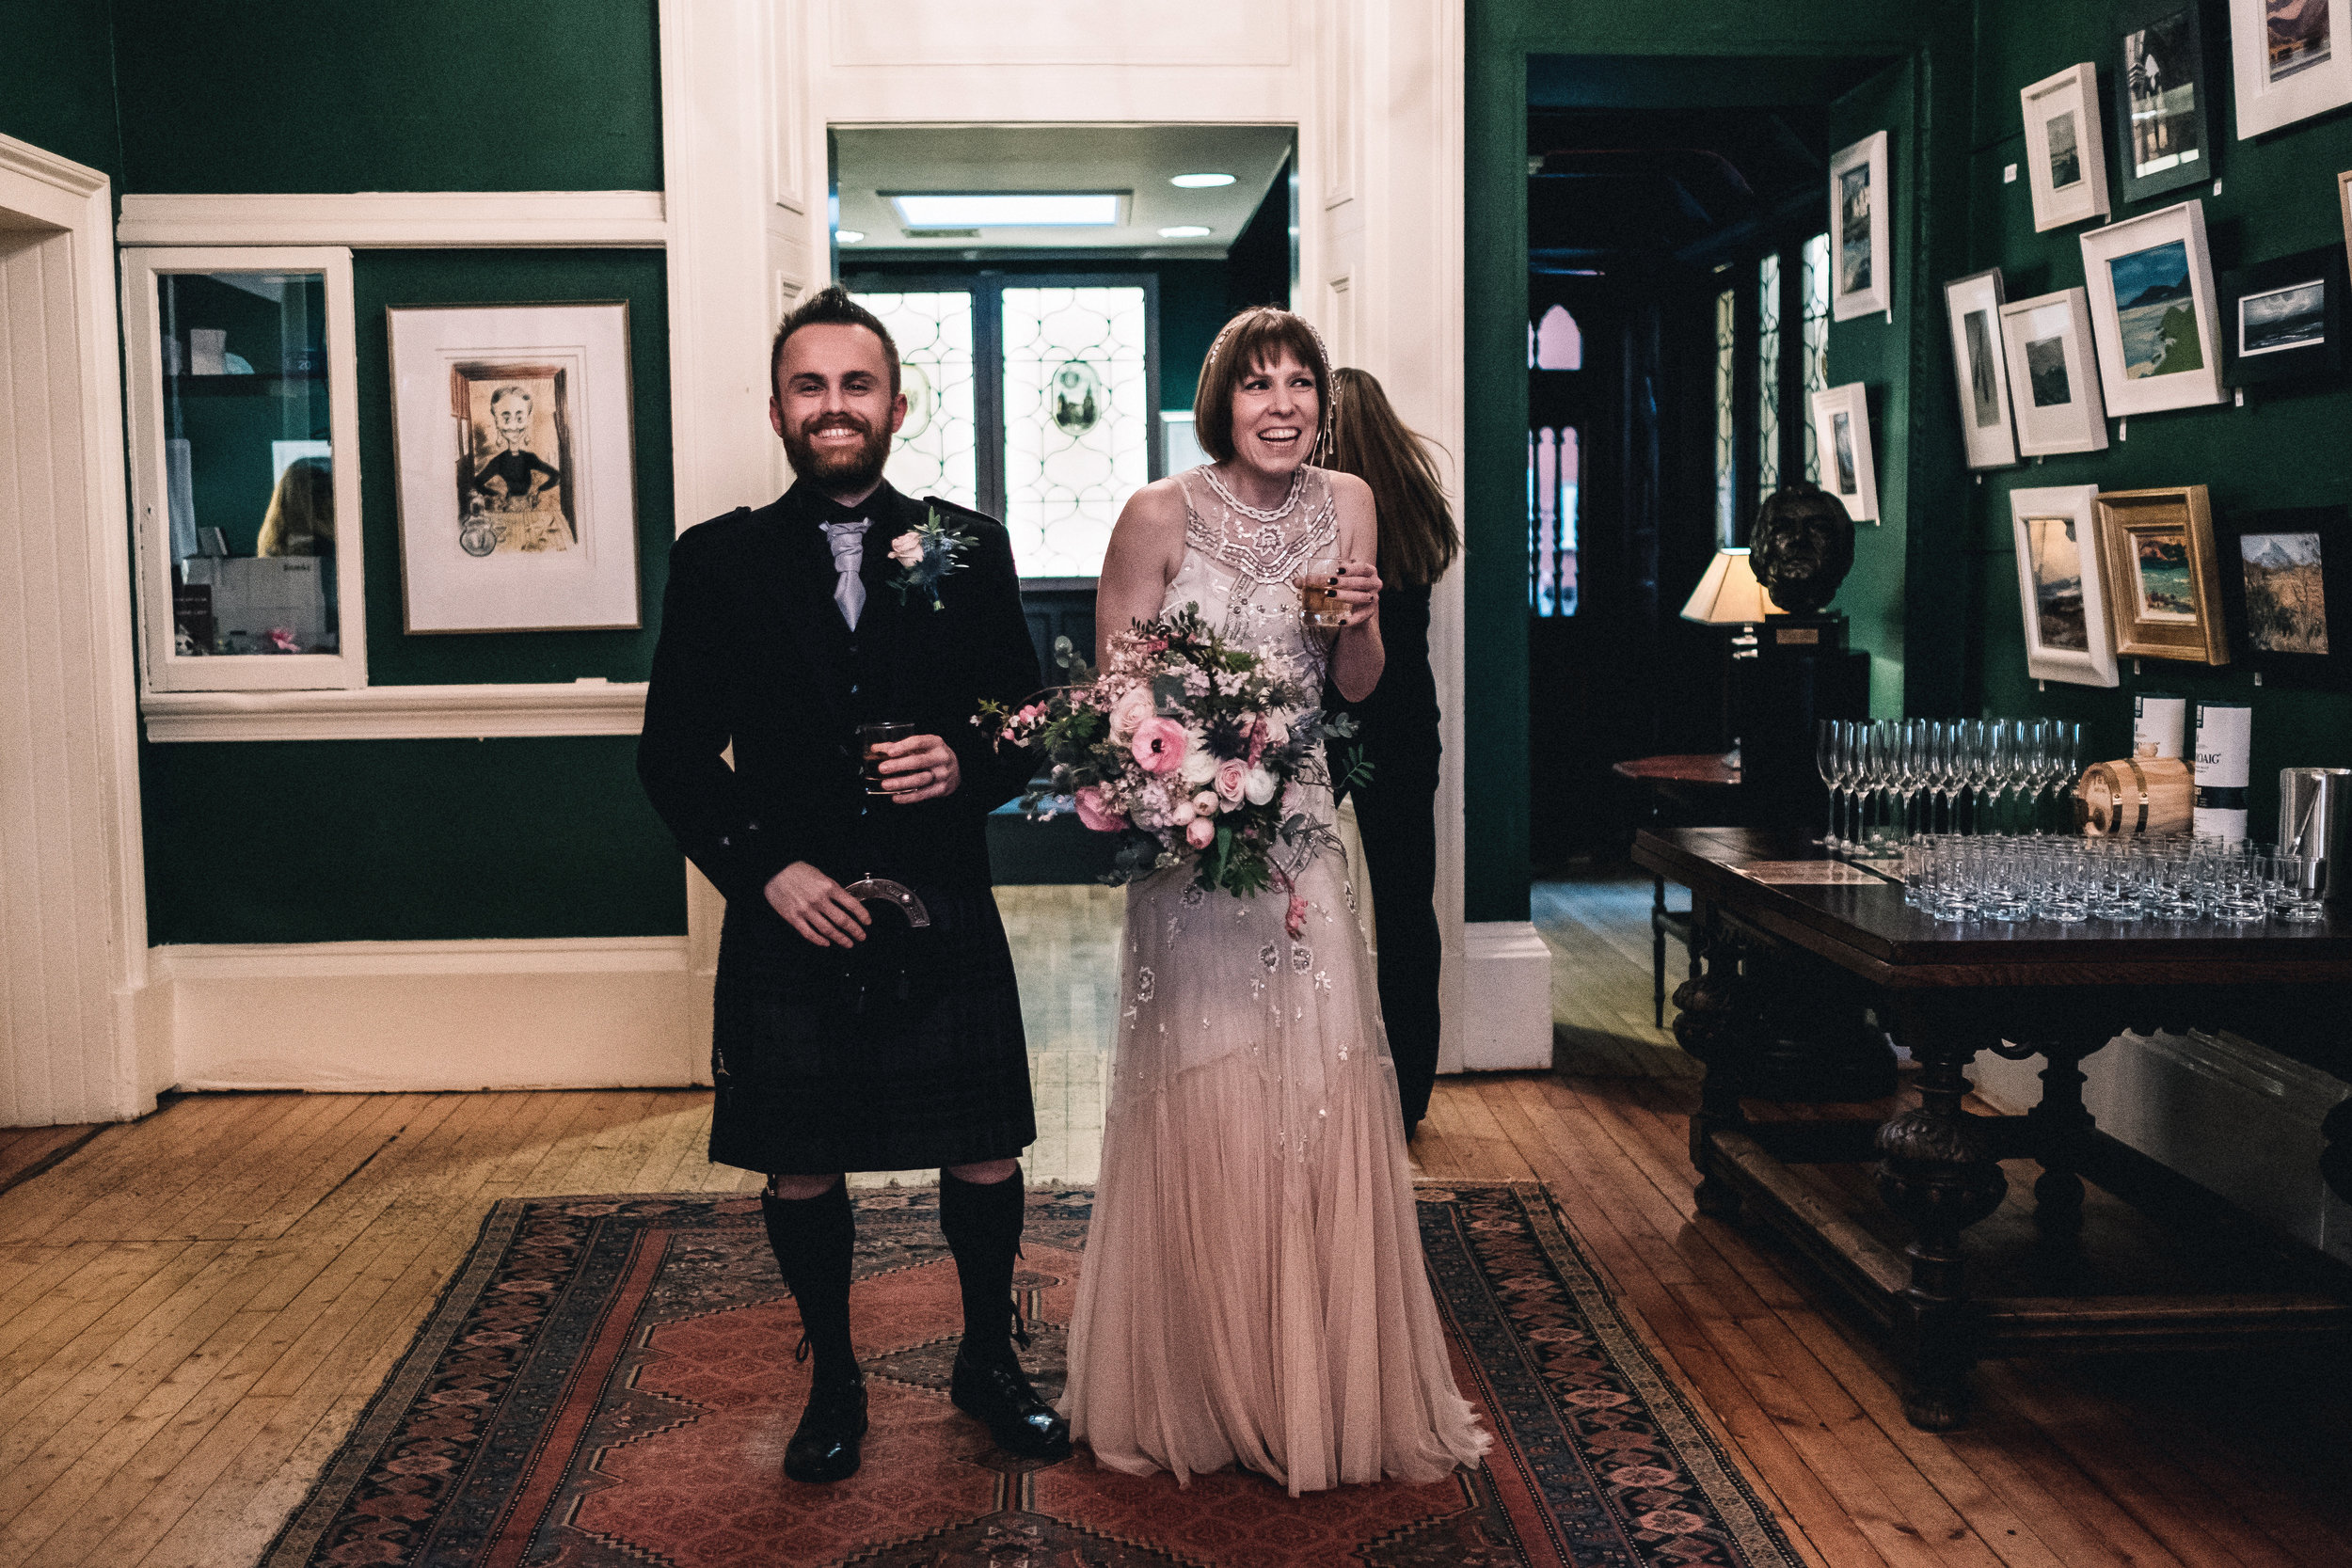 Bride and groom beaming at their guests